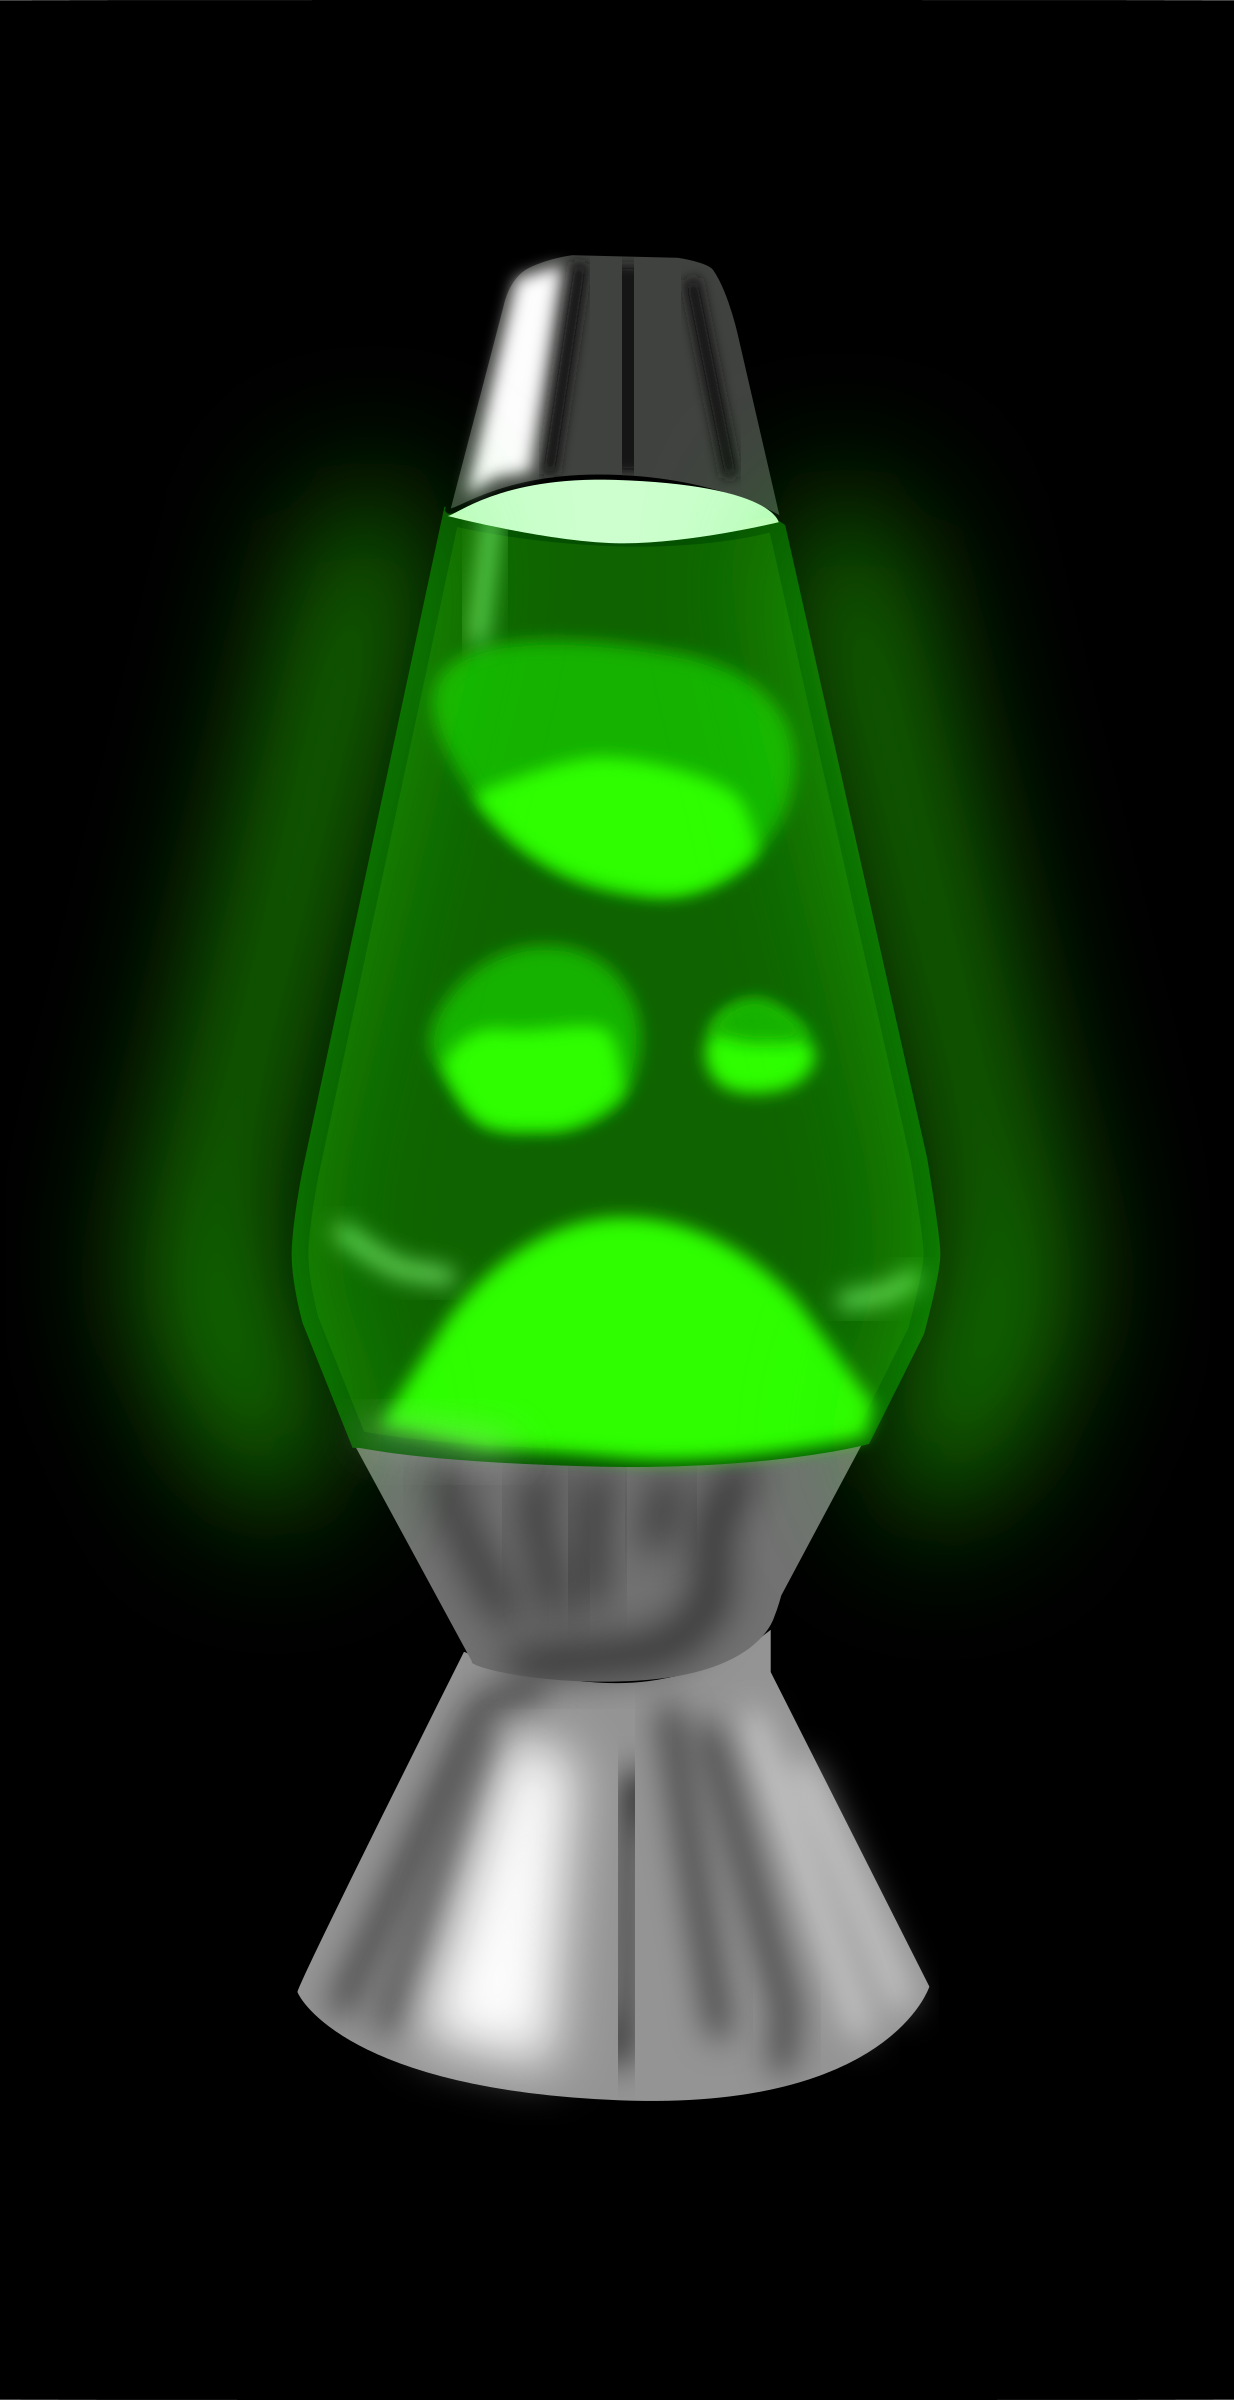 Lava-lamp (Glowing green) by mystica